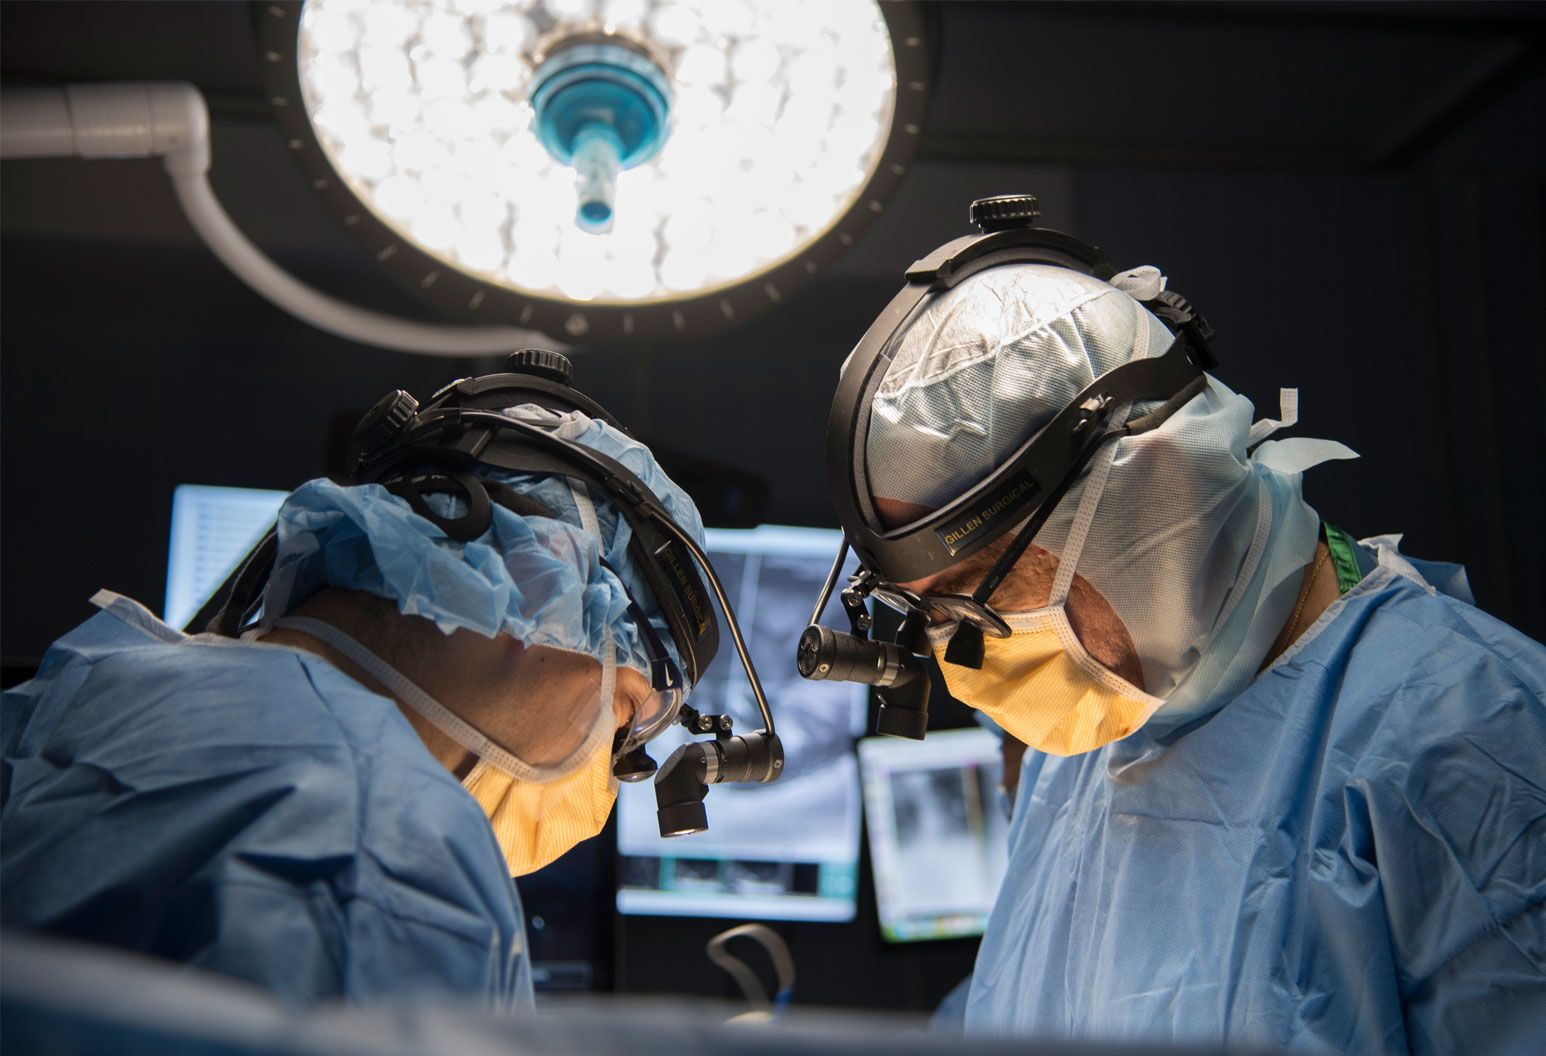 Two surgeons wearing scrubs, masks, and eye magnifying glasses perform surgery.